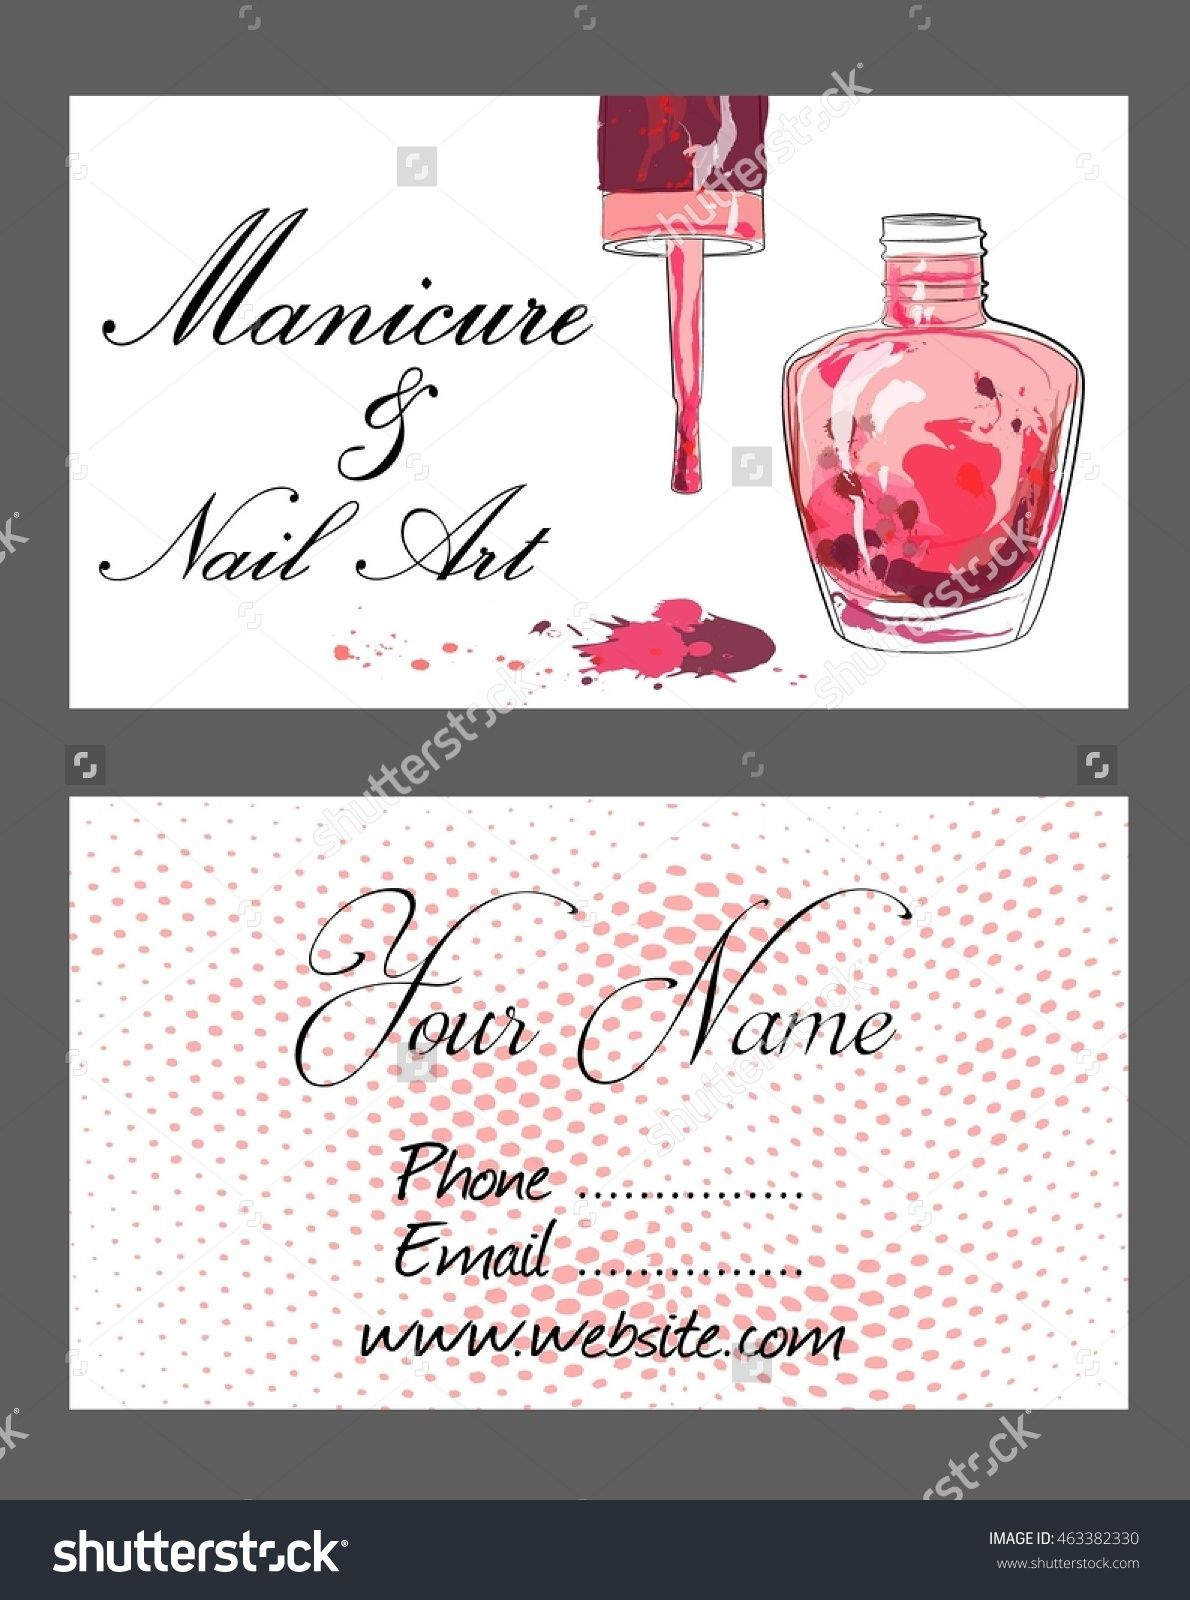 Set Of Business Cards For Manicure And Nail Art. Stock Vector ...